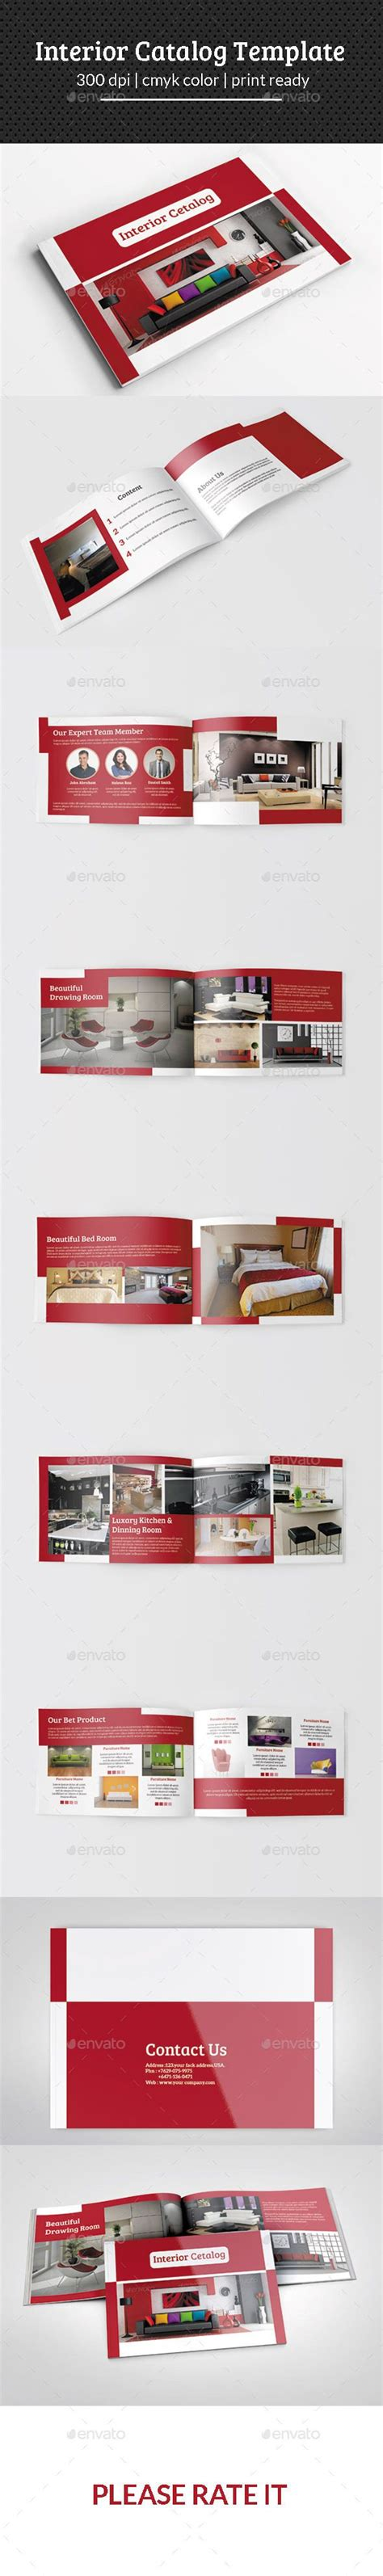 layout template graphicriver interior catalog template download http graphicriver